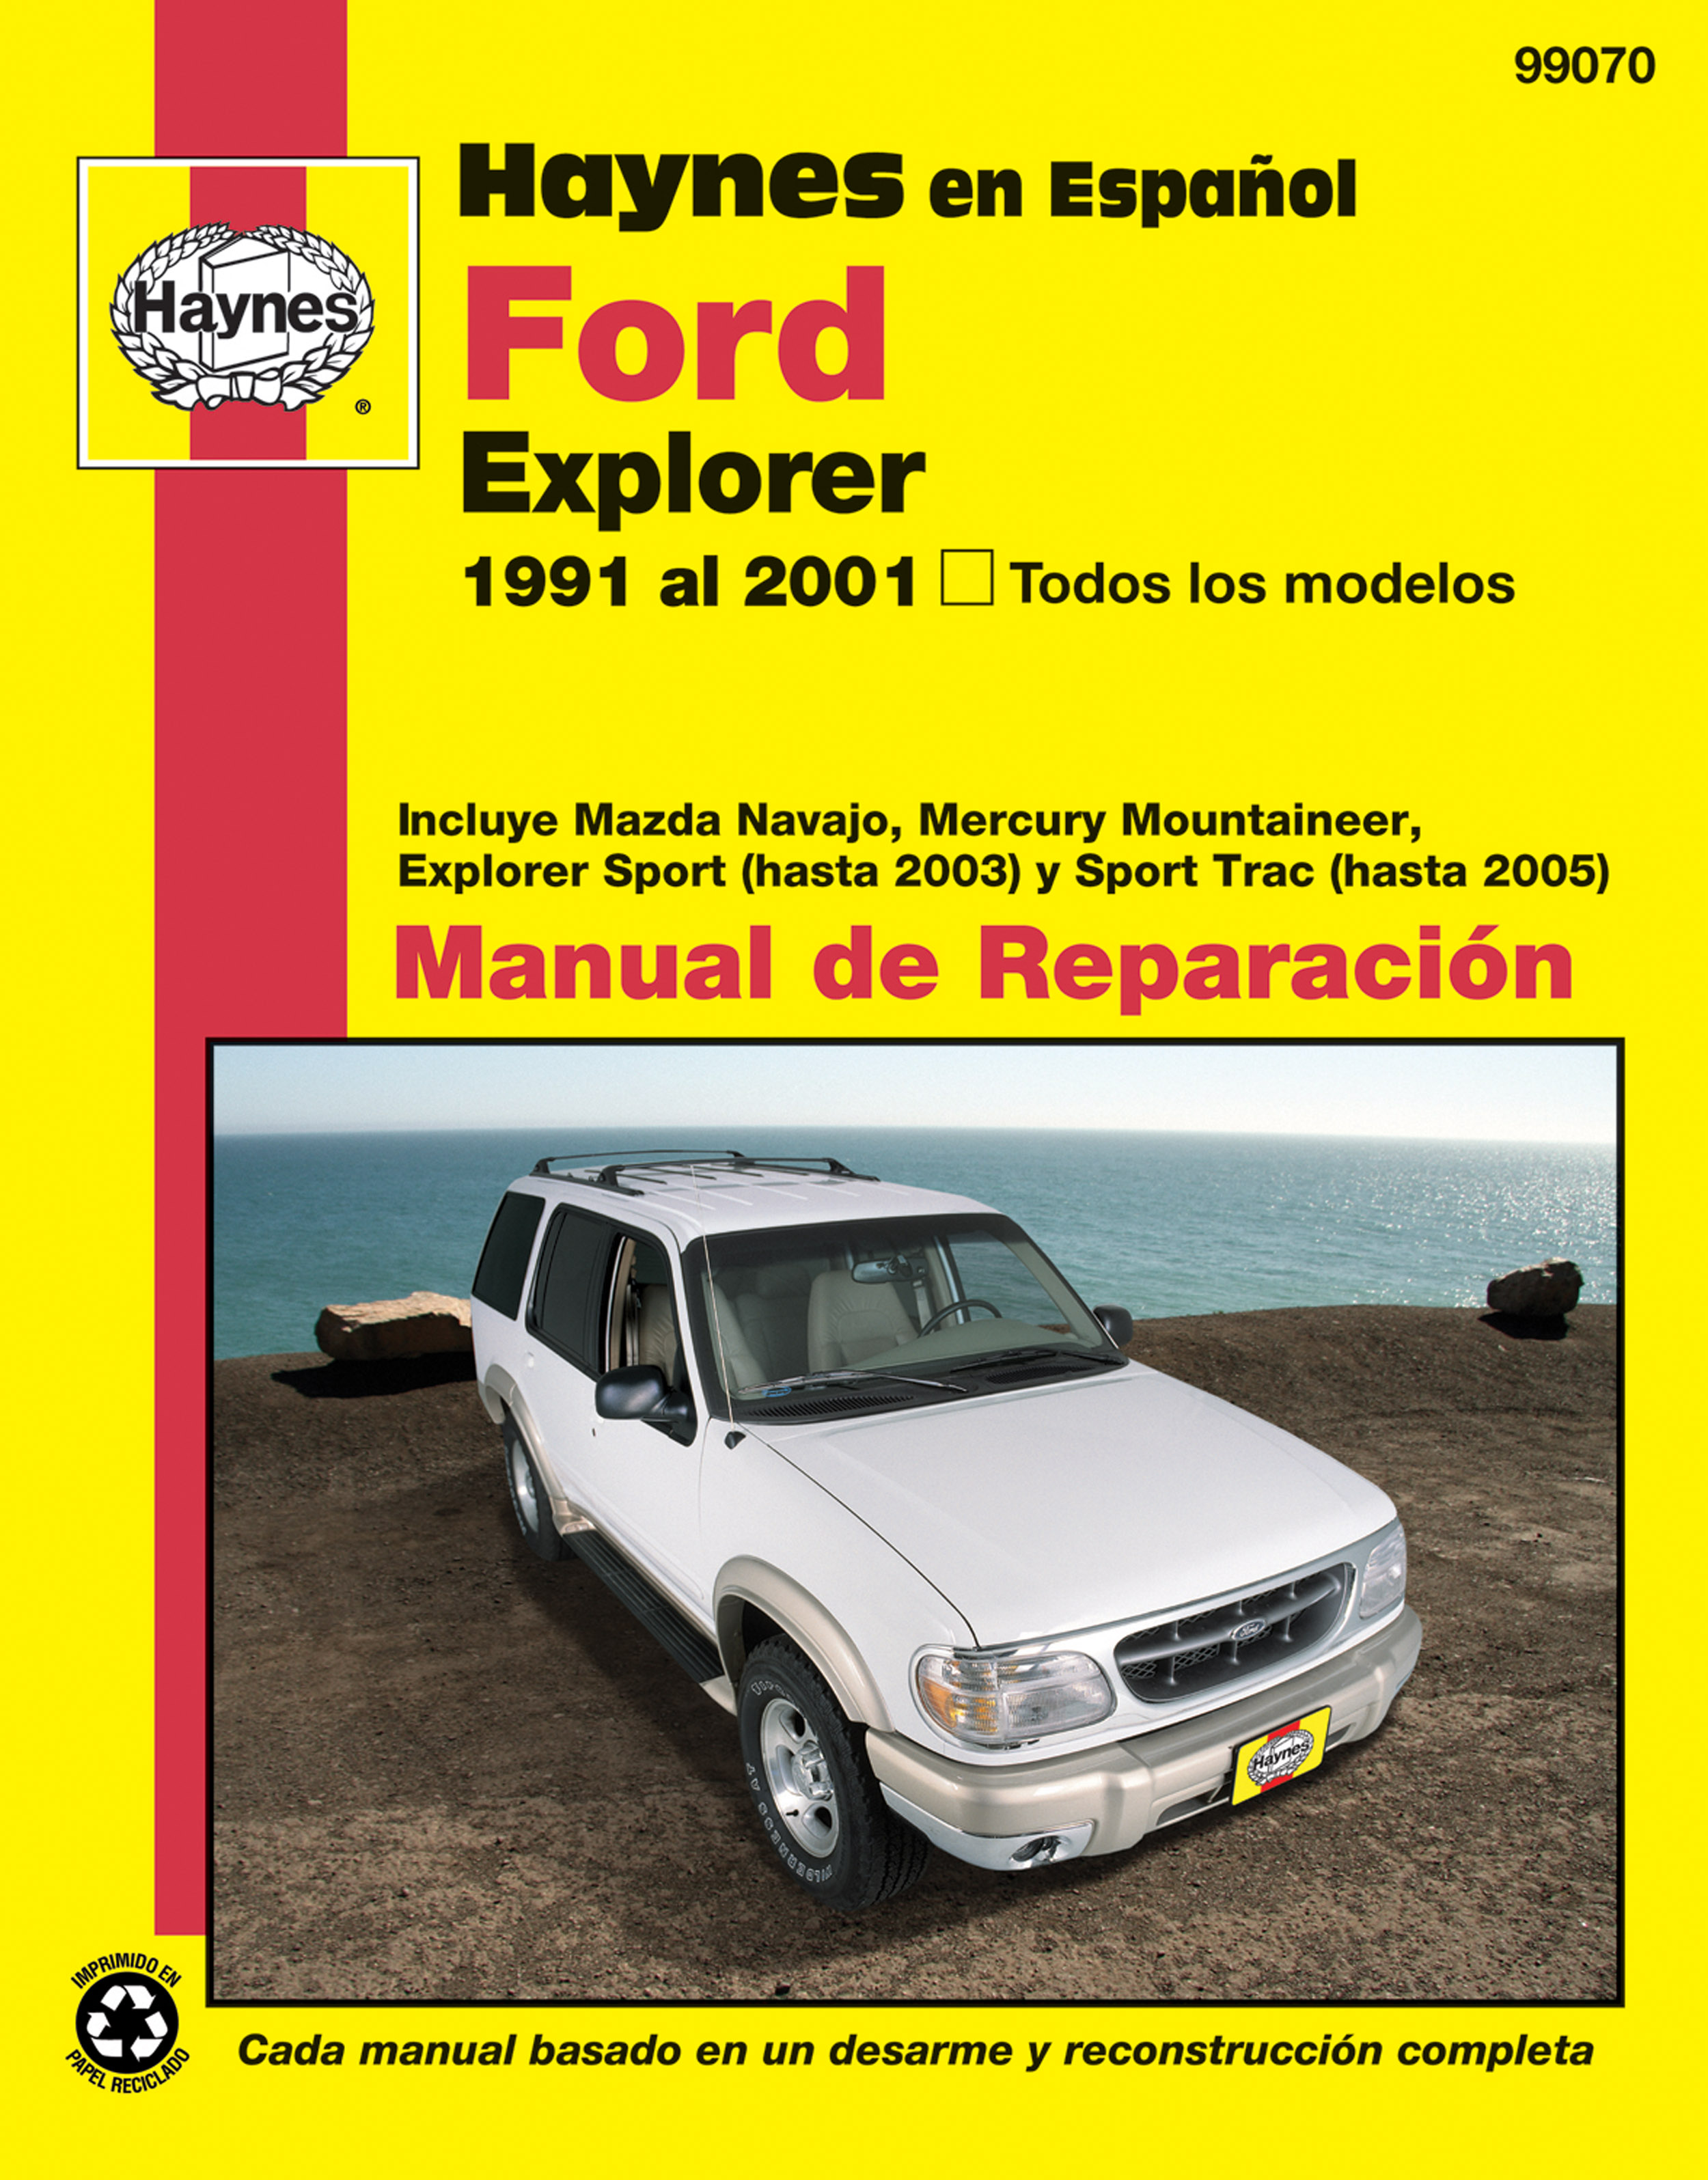 Enlarge Ford Explorer Haynes Manual de ...